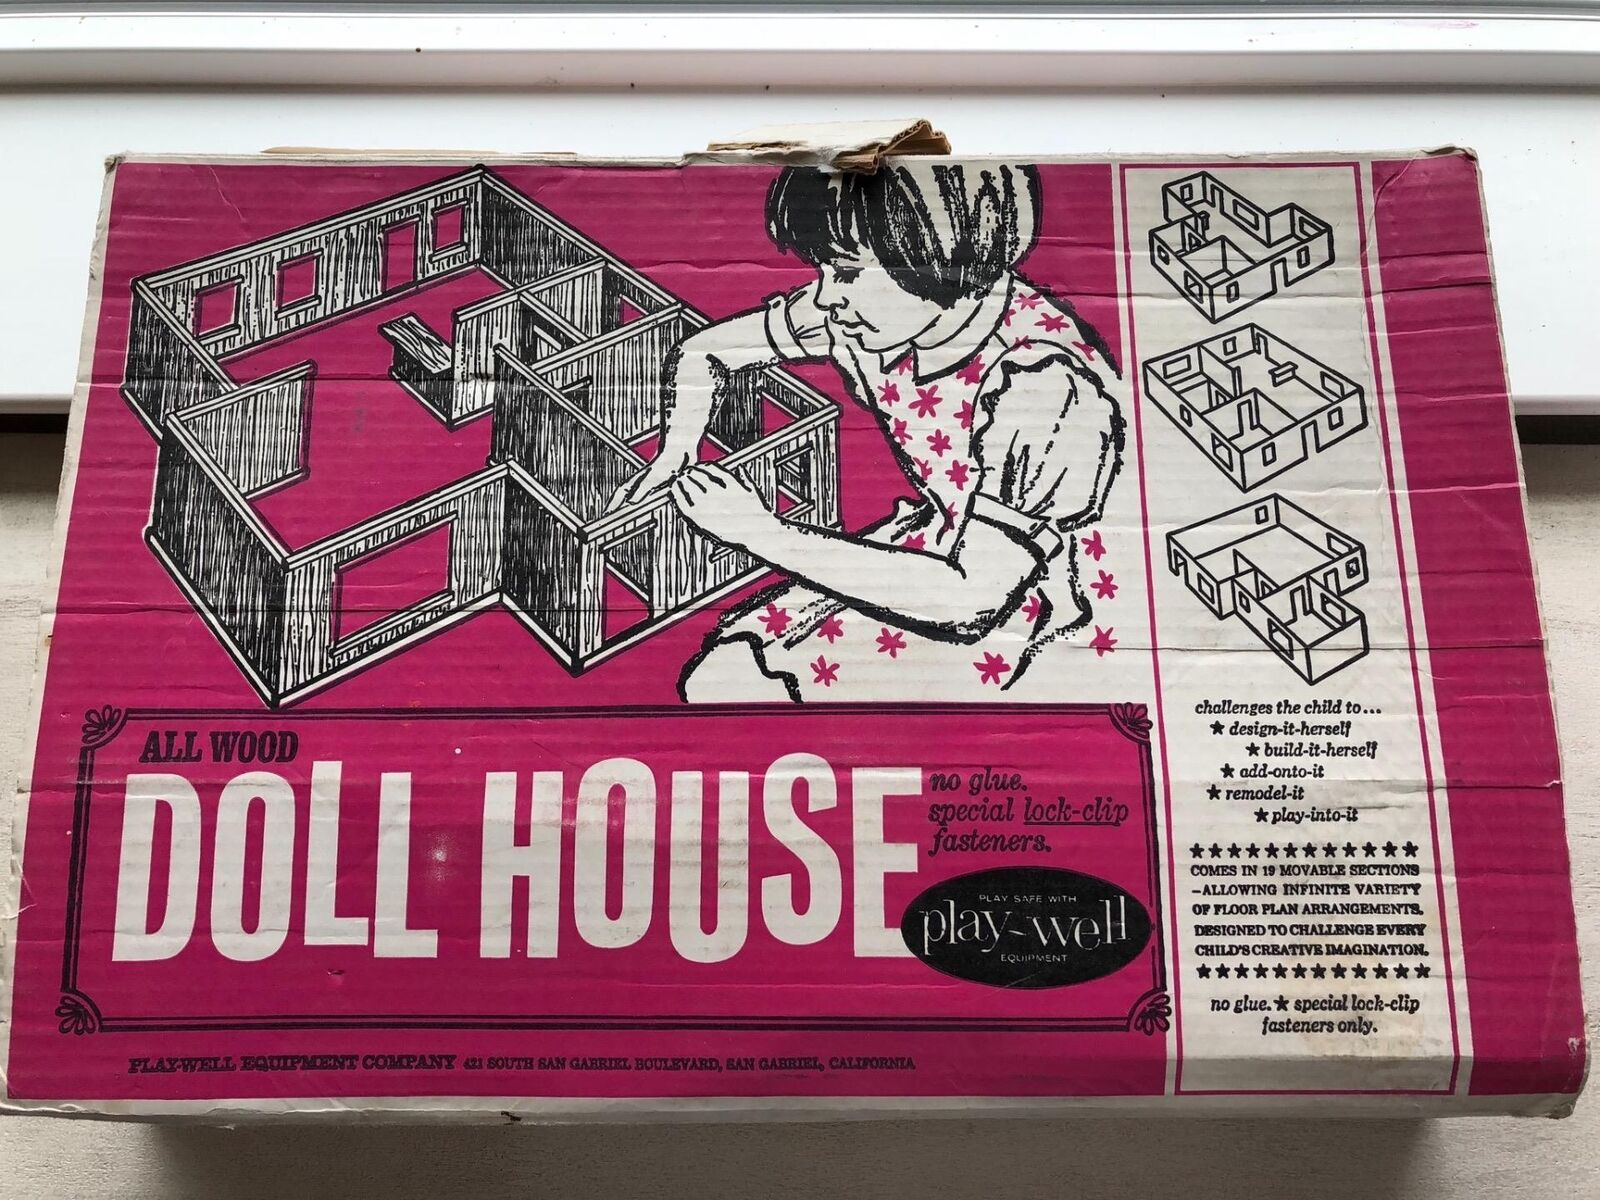 VINTAGE PLAY-WELL DOLL HOUSE in box 1960's...WOOD SECTIONAL/MULTI-DESIGN